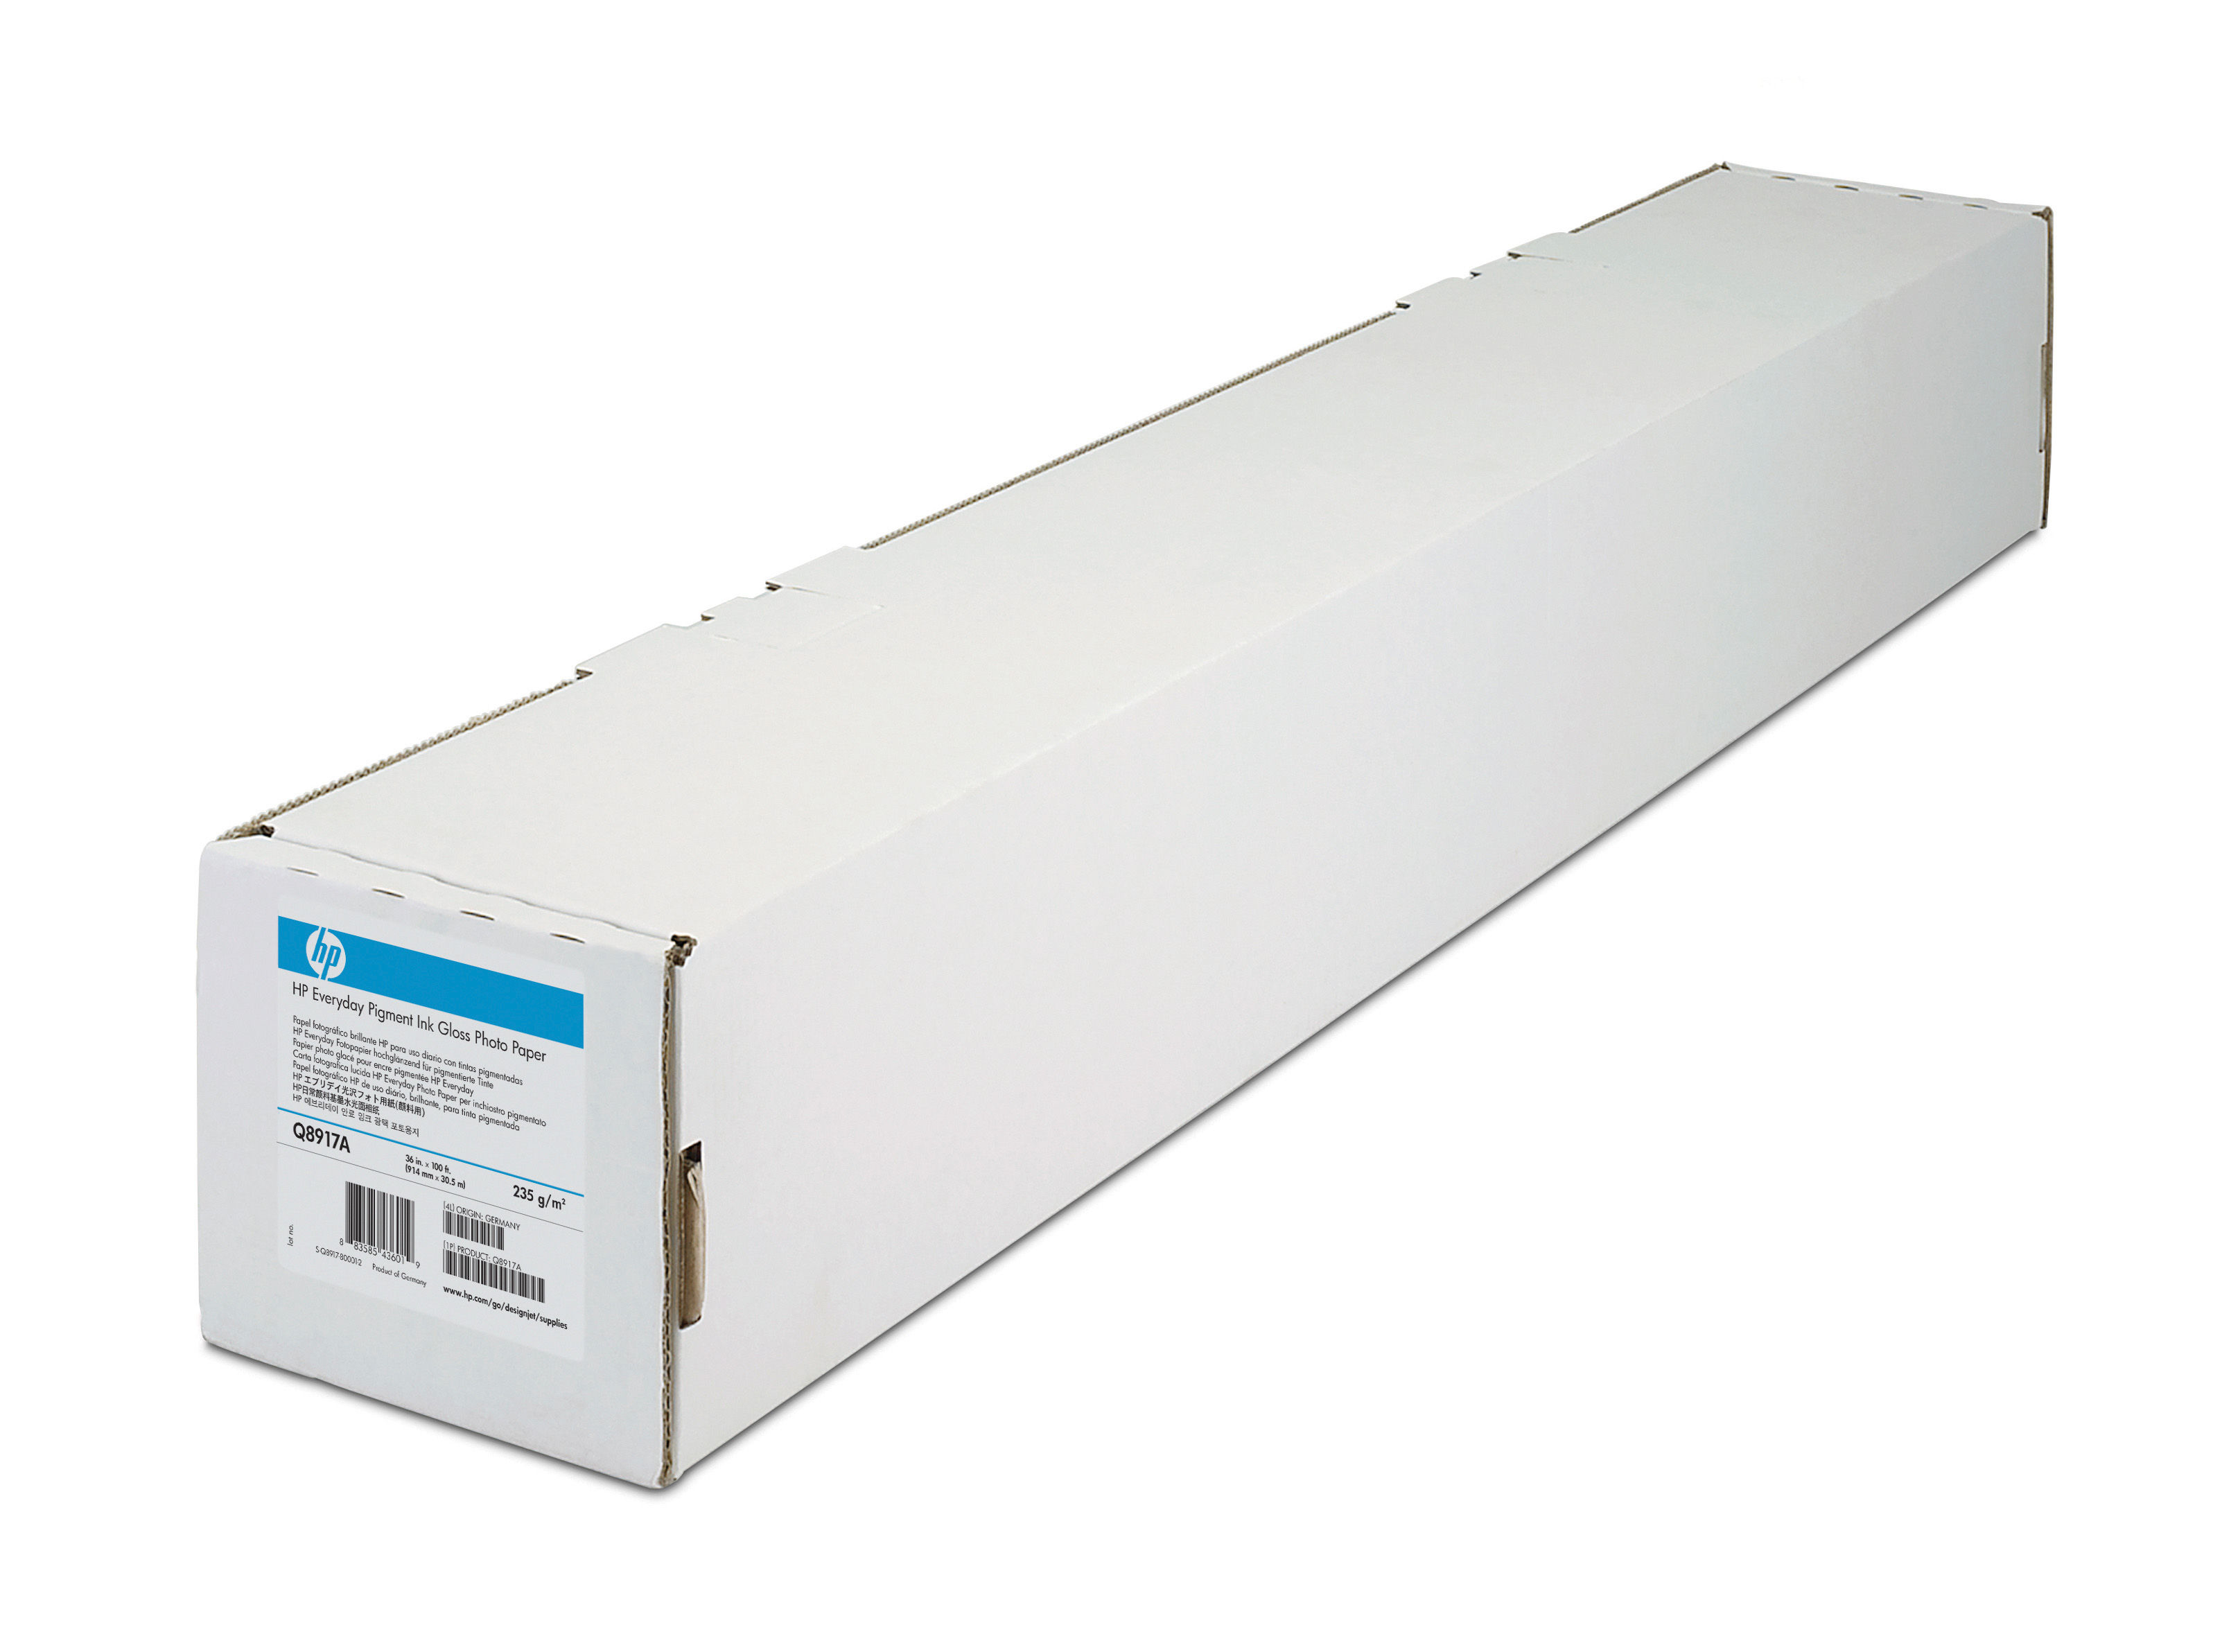 Lf Hvy Weight Coated Paper 24 Roll C6029c - WC01